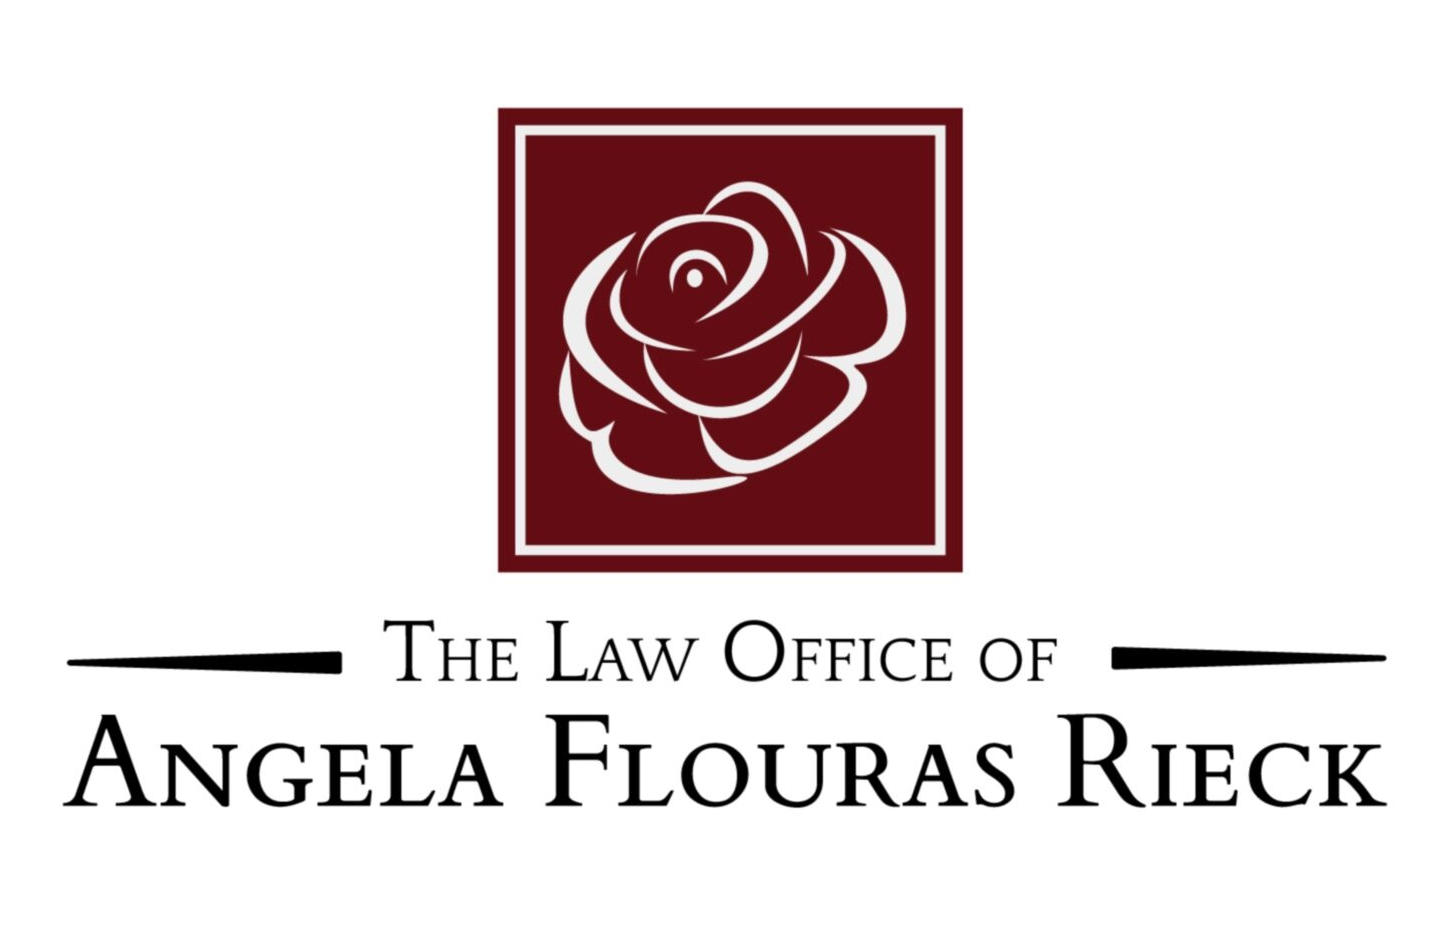 The Law Office of Angela Flouras Rieck